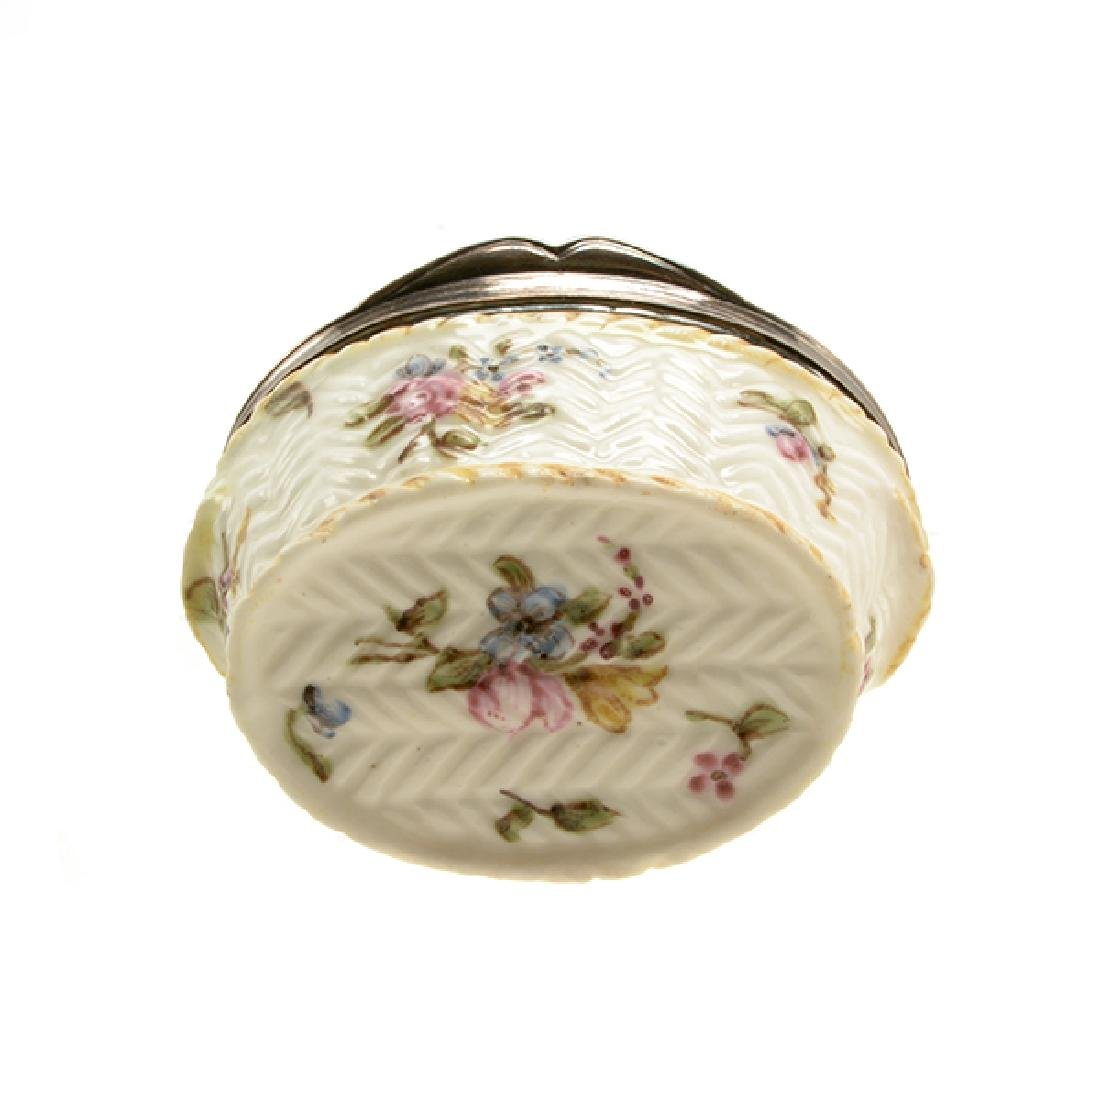 French Mennecy Silver Mounted Porcelain Snuff Box - 8